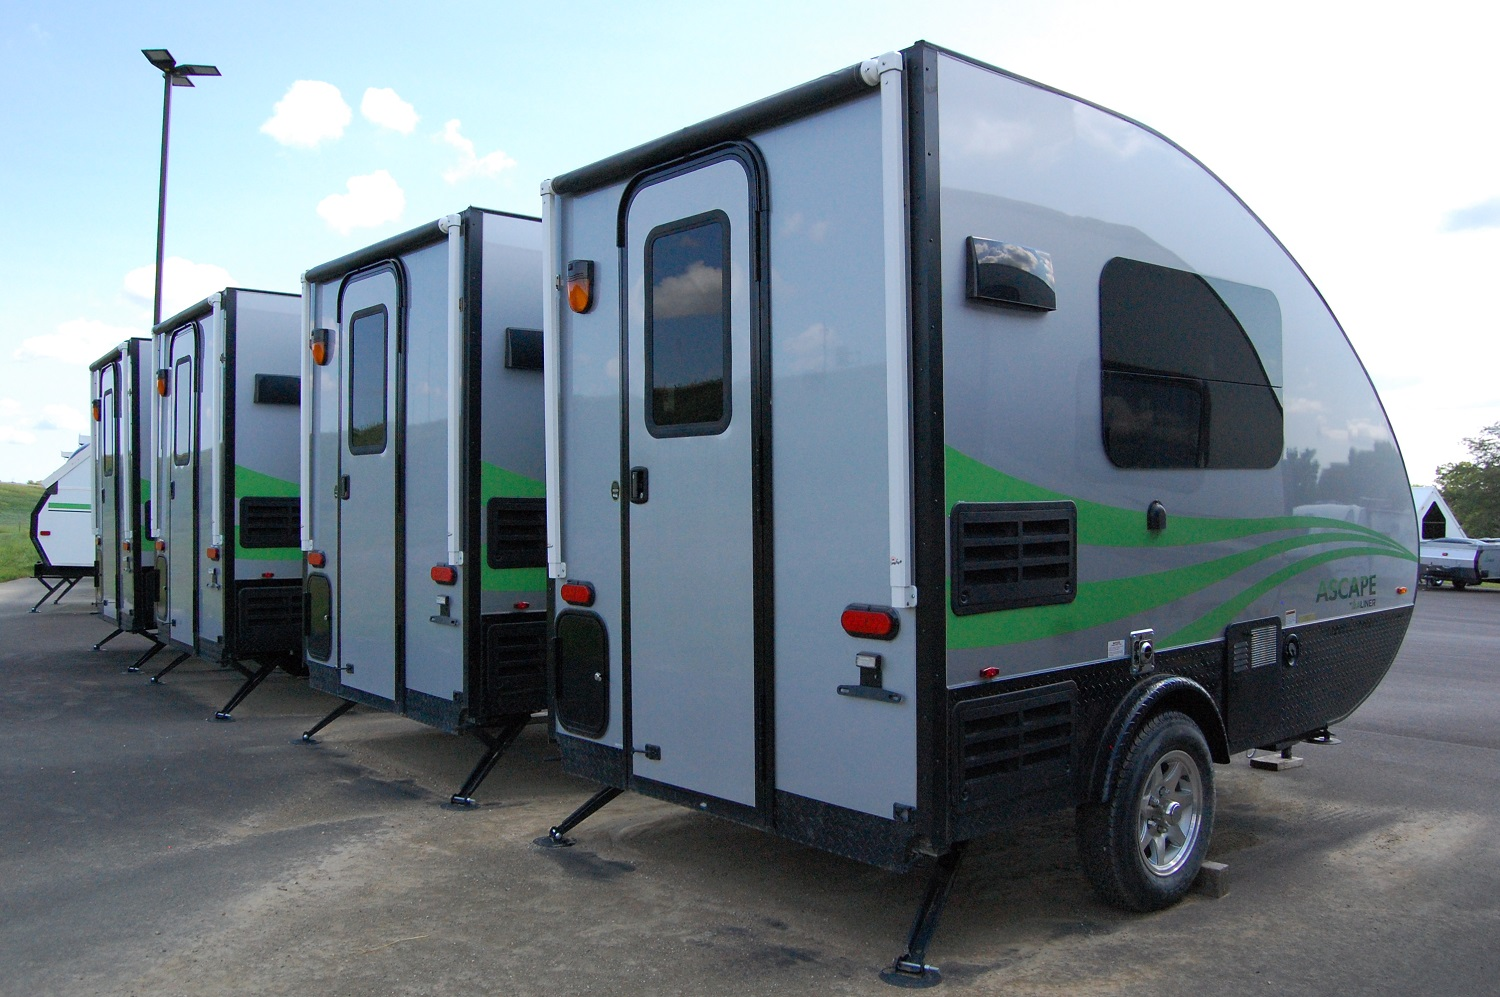 2018 Aliner Ascape Firsthand Report The Small Trailer